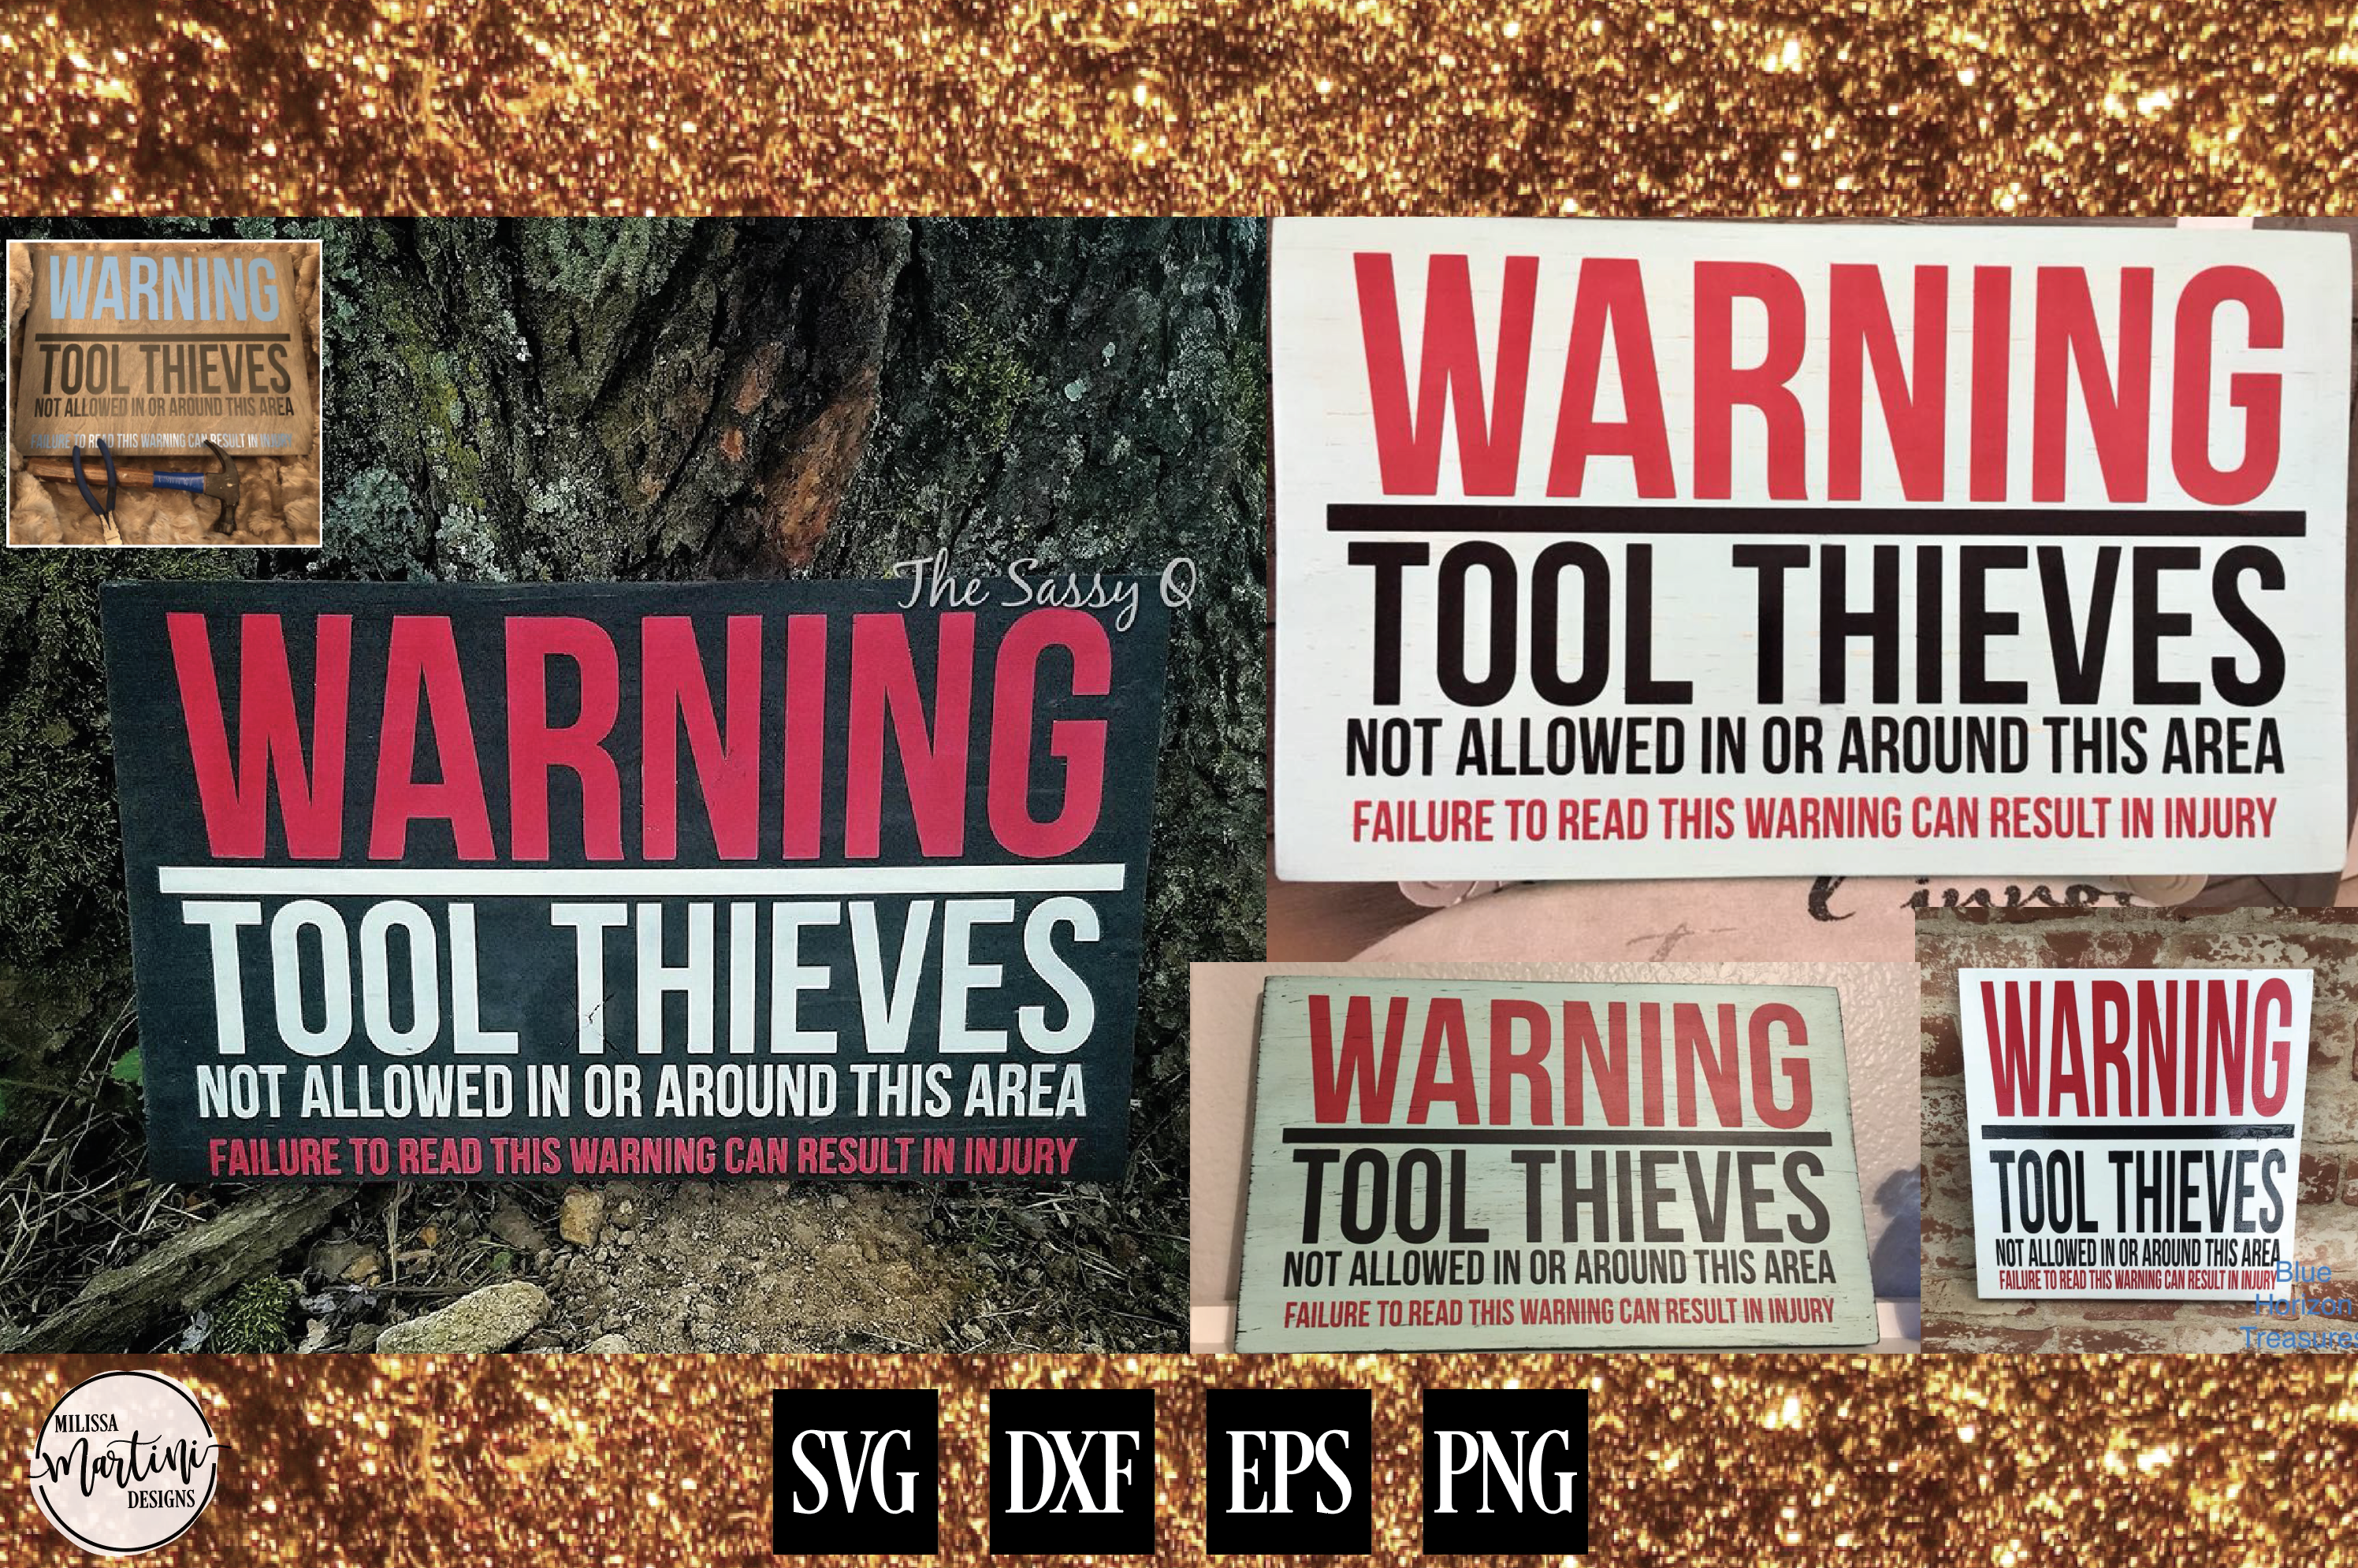 WARNING TOOL THEIVES Mechanic Sign Shirt Decal example image 3